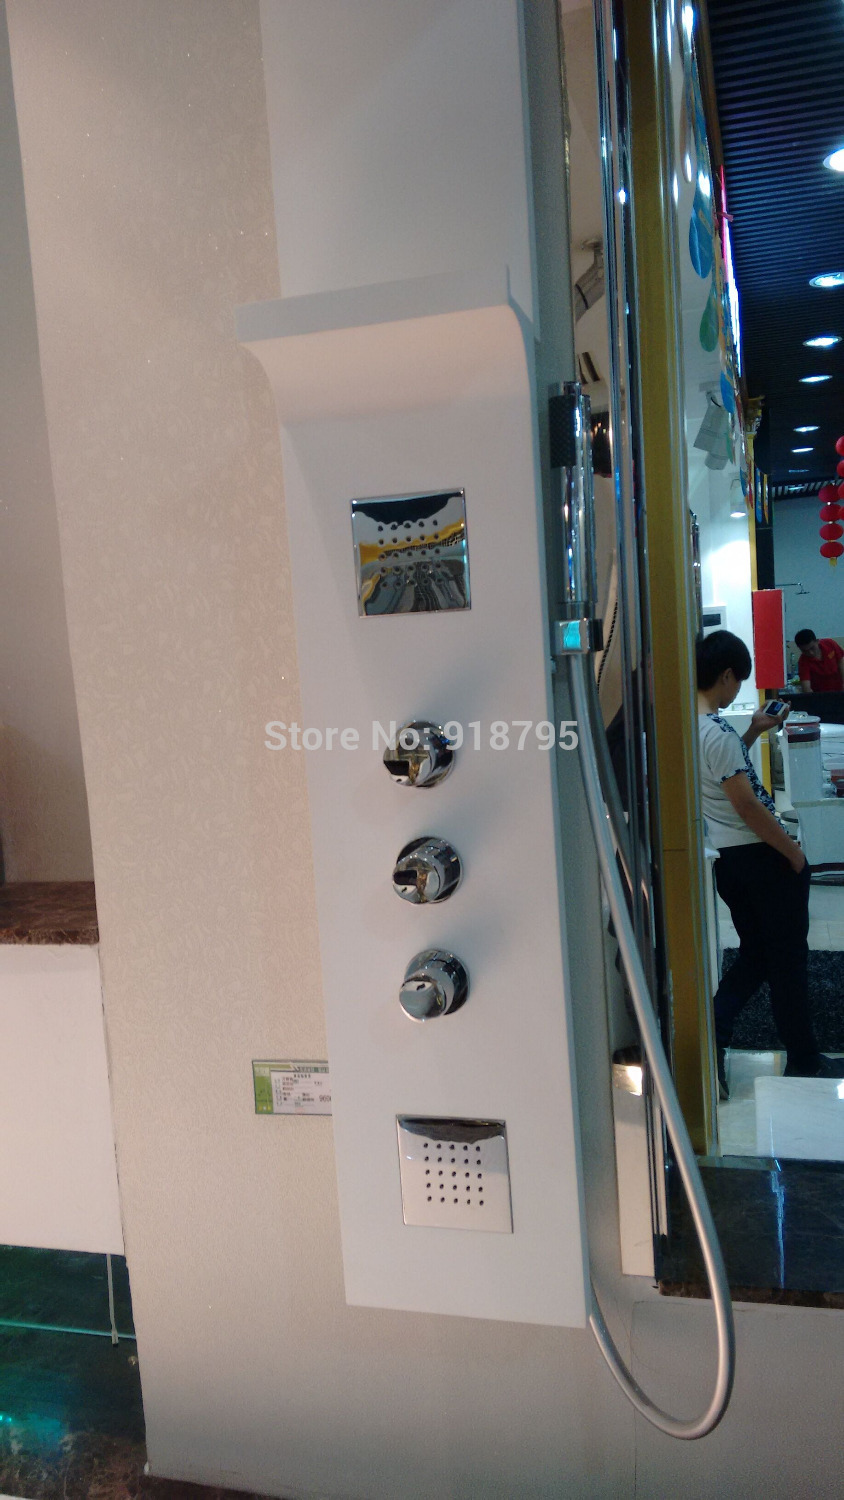 Matt Solid surface stone shower panel wall mounted Corain shower column Body massage Jets Sprinkler  RS0032